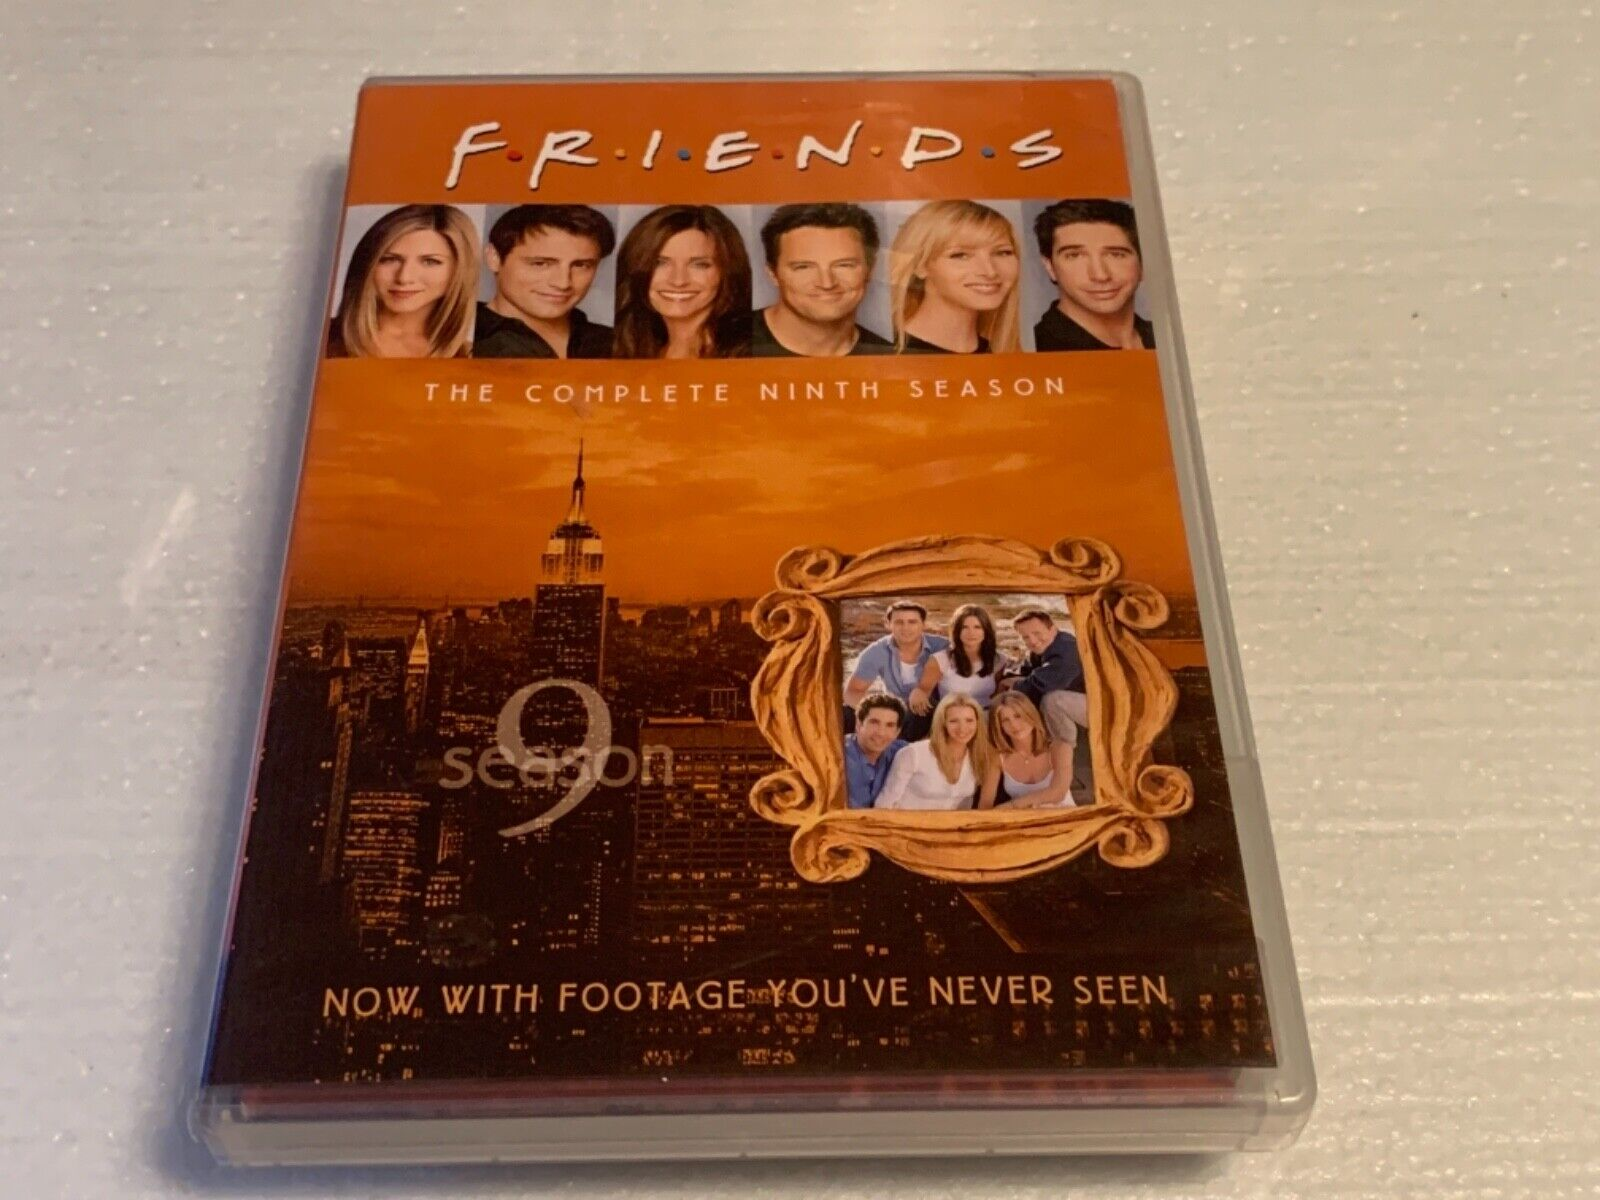 Friends - The Complete Ninth Season DVD, 2010, 4-Disc Set  - $7.50